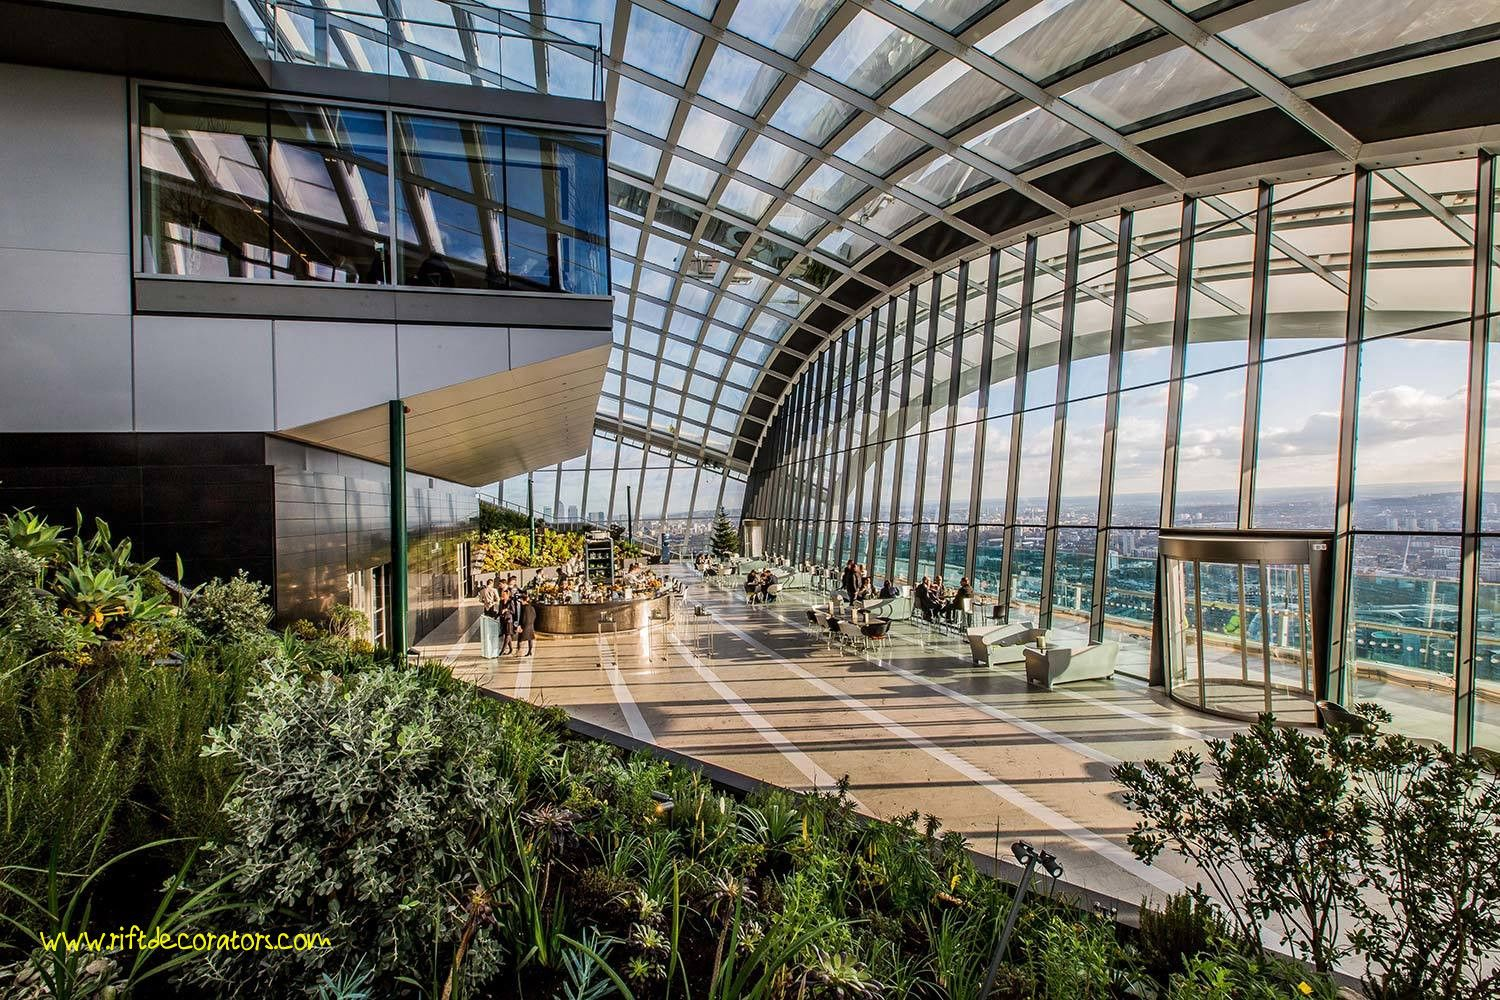 35 Lovely Rooftop Garden Bar London Best Rooftop Bars In London In 2020 Sky Garden Tourist Trap Things To Do In London